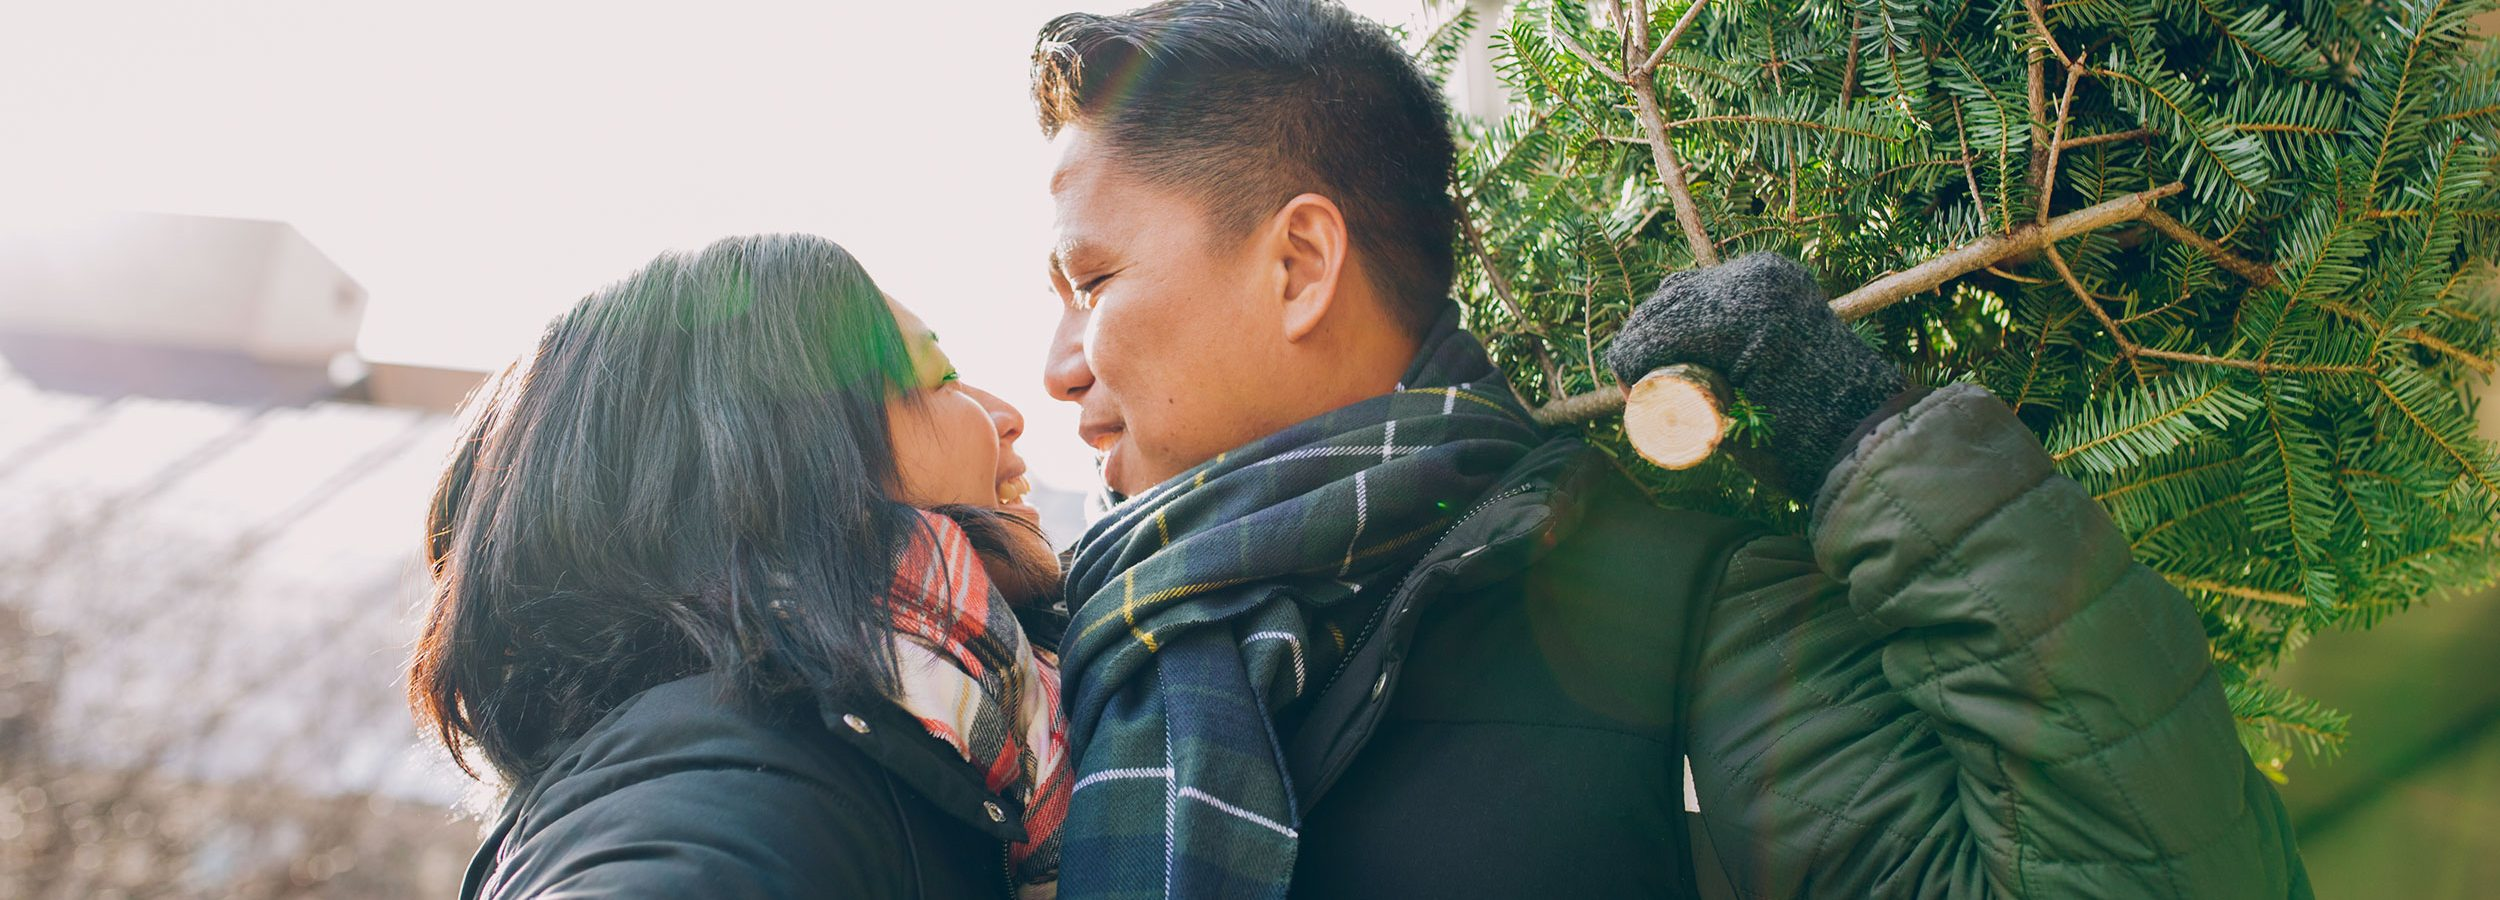 5 Tips to Stress-Proof Your Marriage This Holiday Season